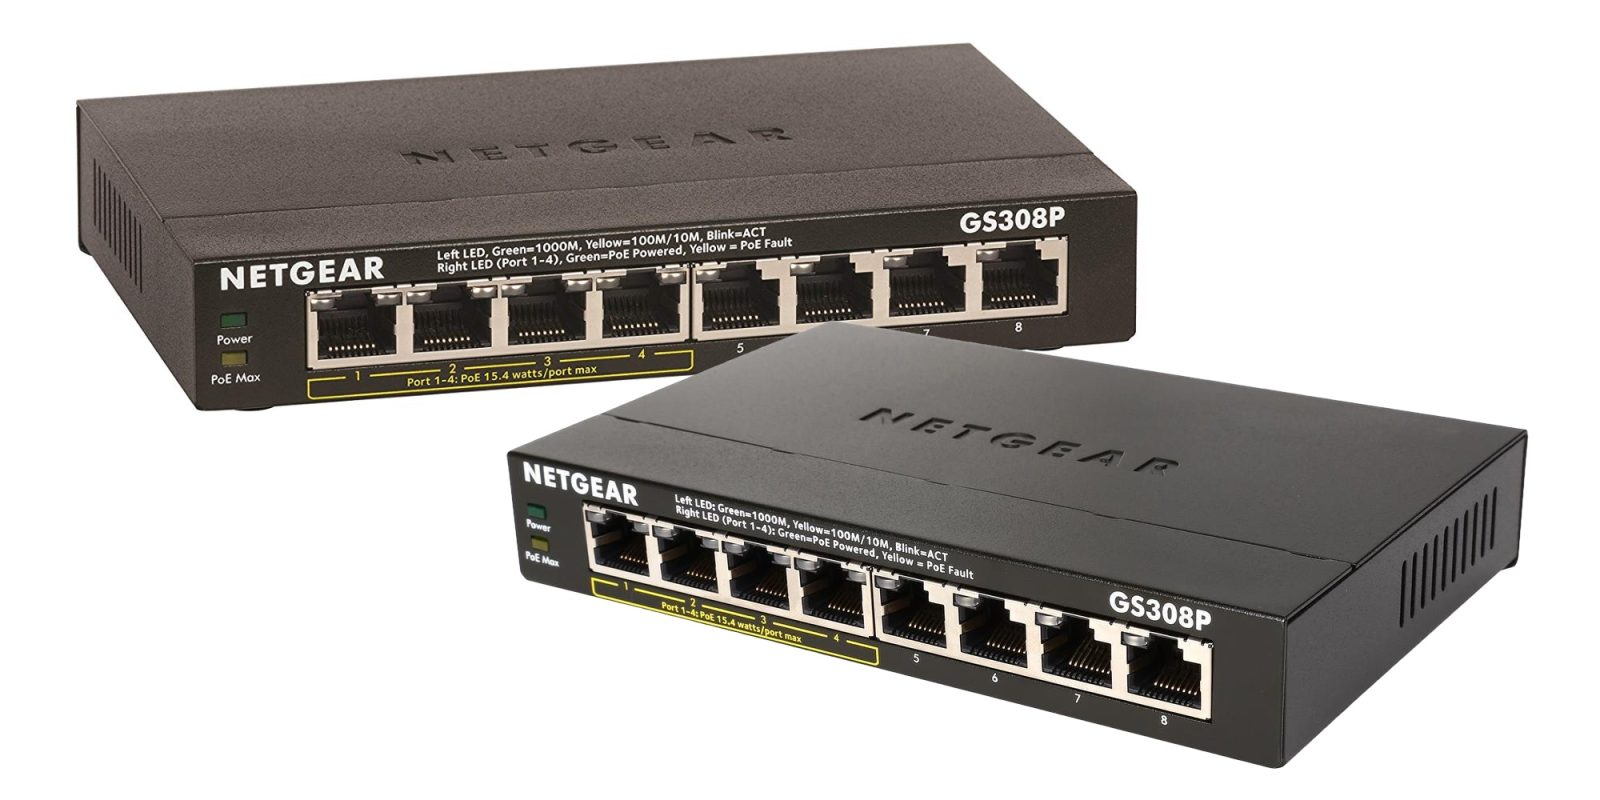 Power cameras, more w/ NETGEAR's 8-Port 55W POE Switch at $45 (Reg. up to $85)